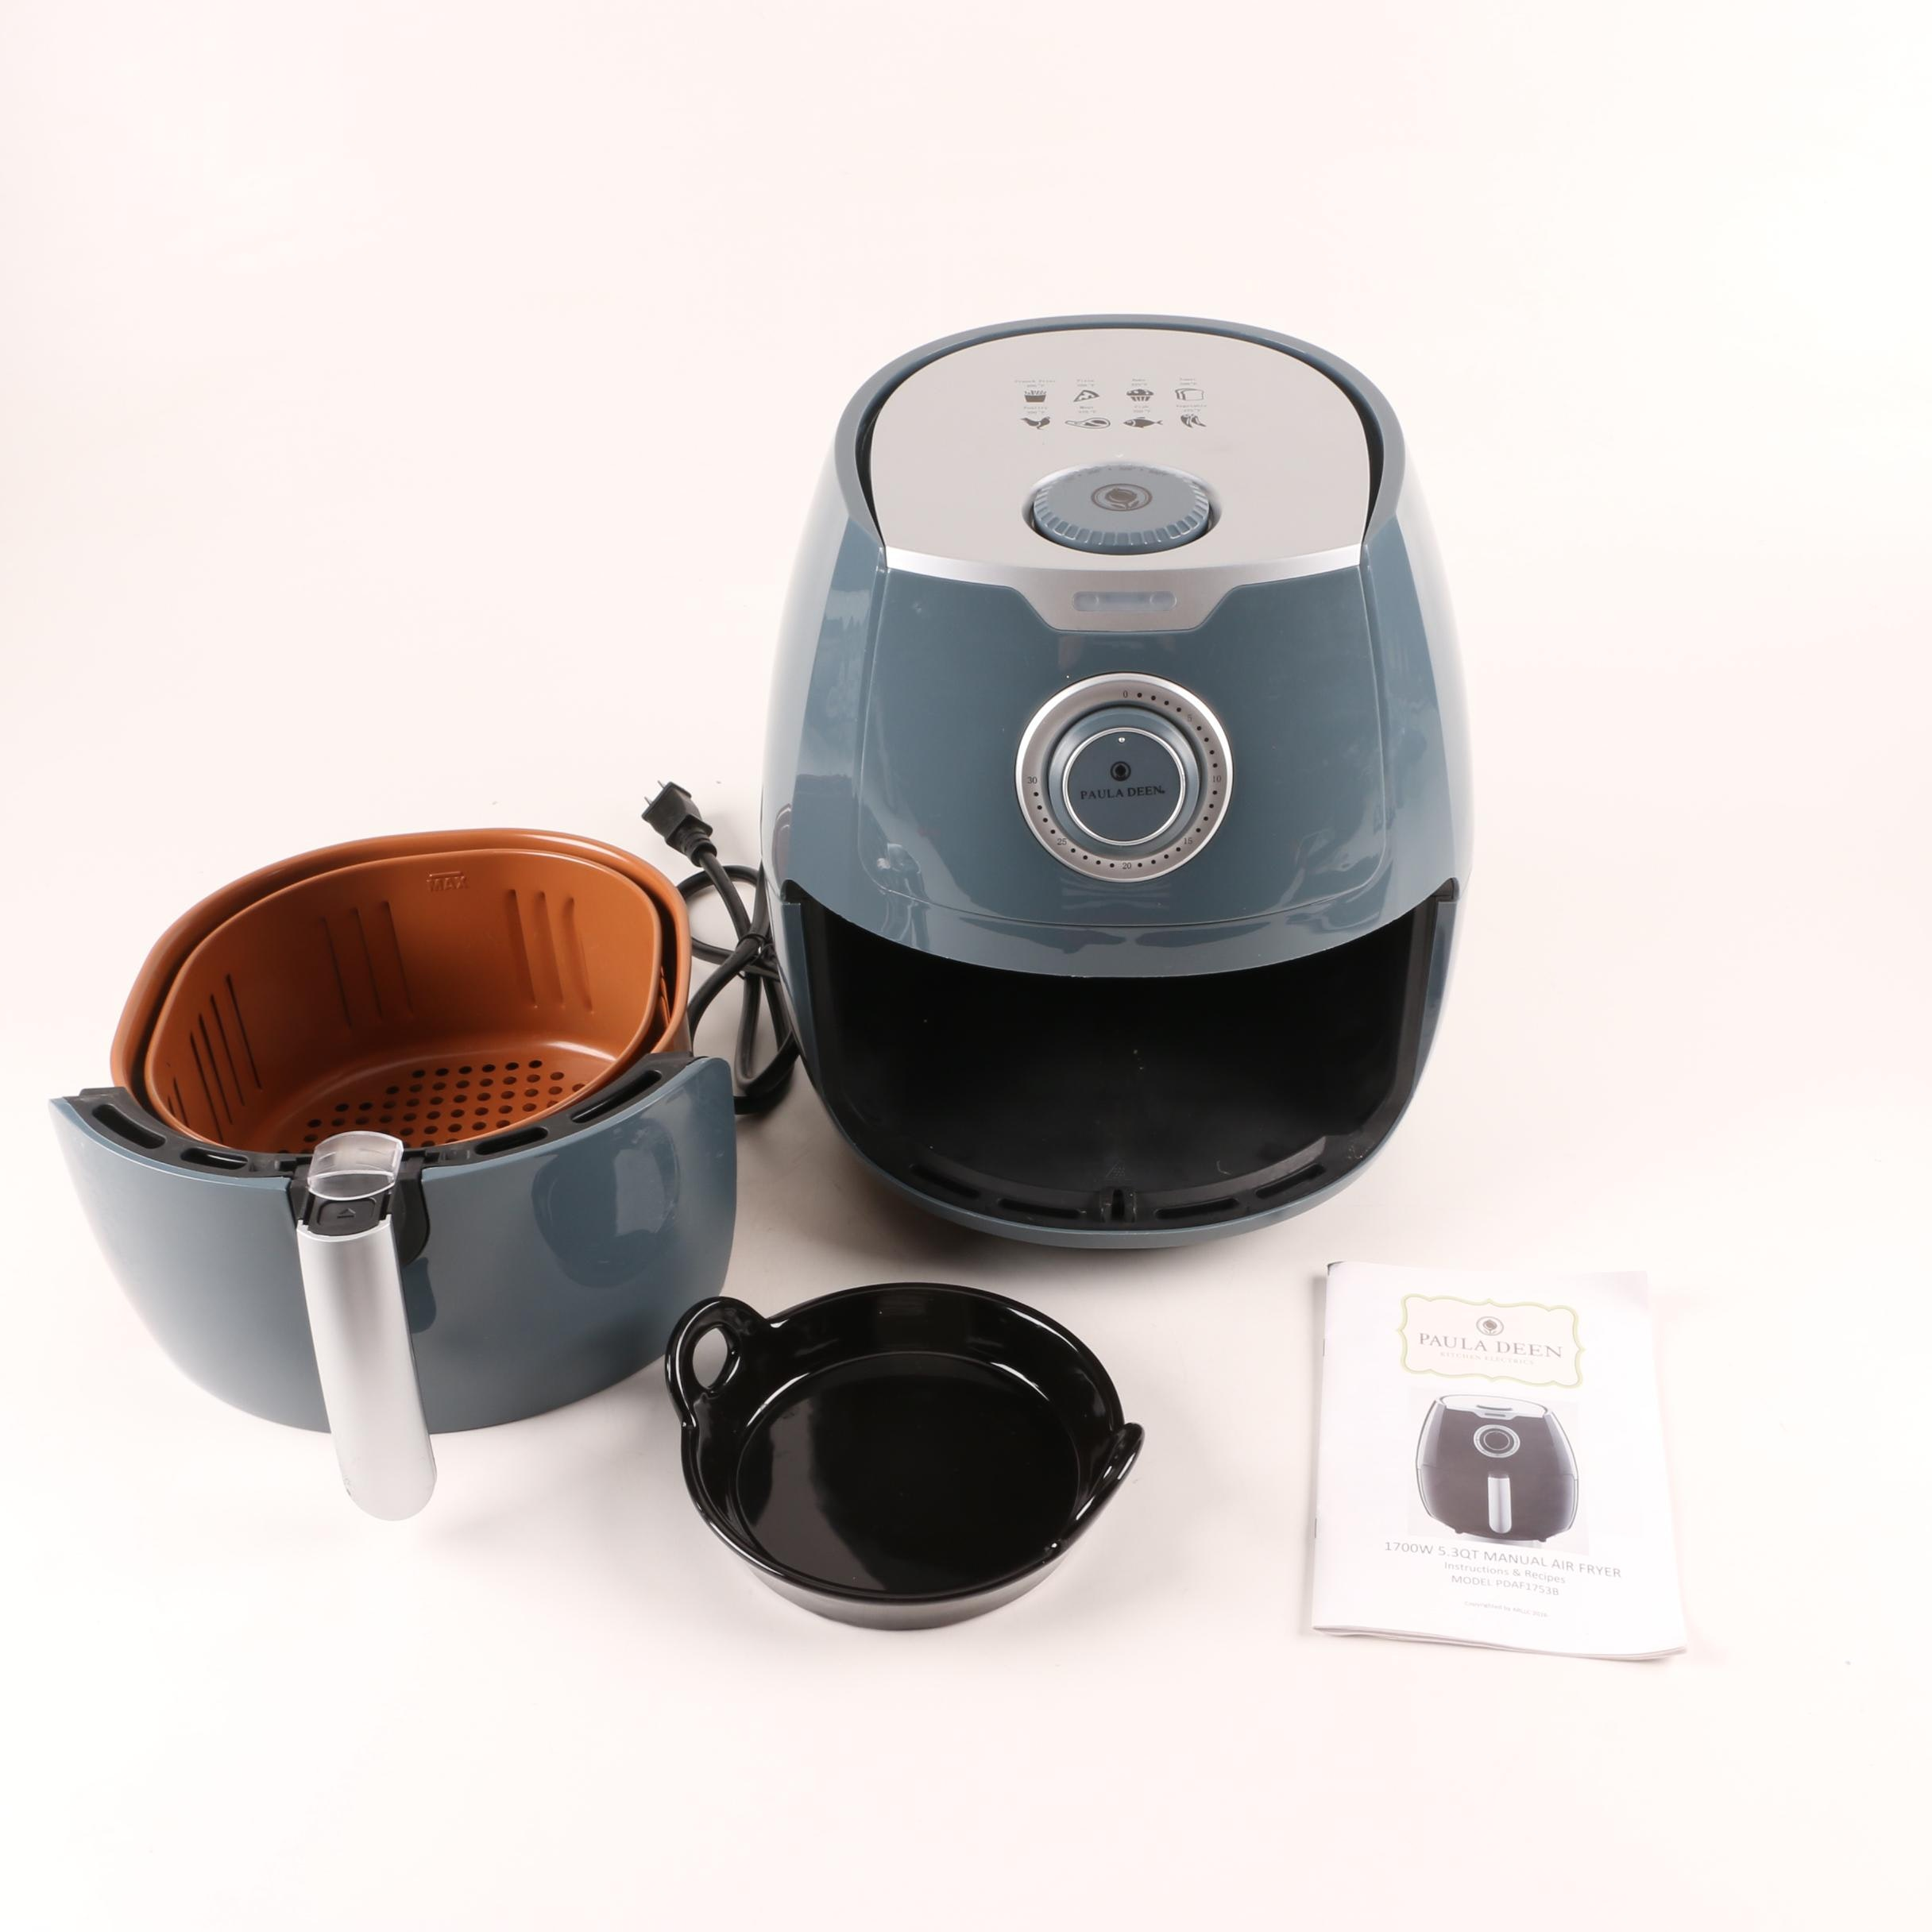 Paula Deen Small Kitchen Appliances